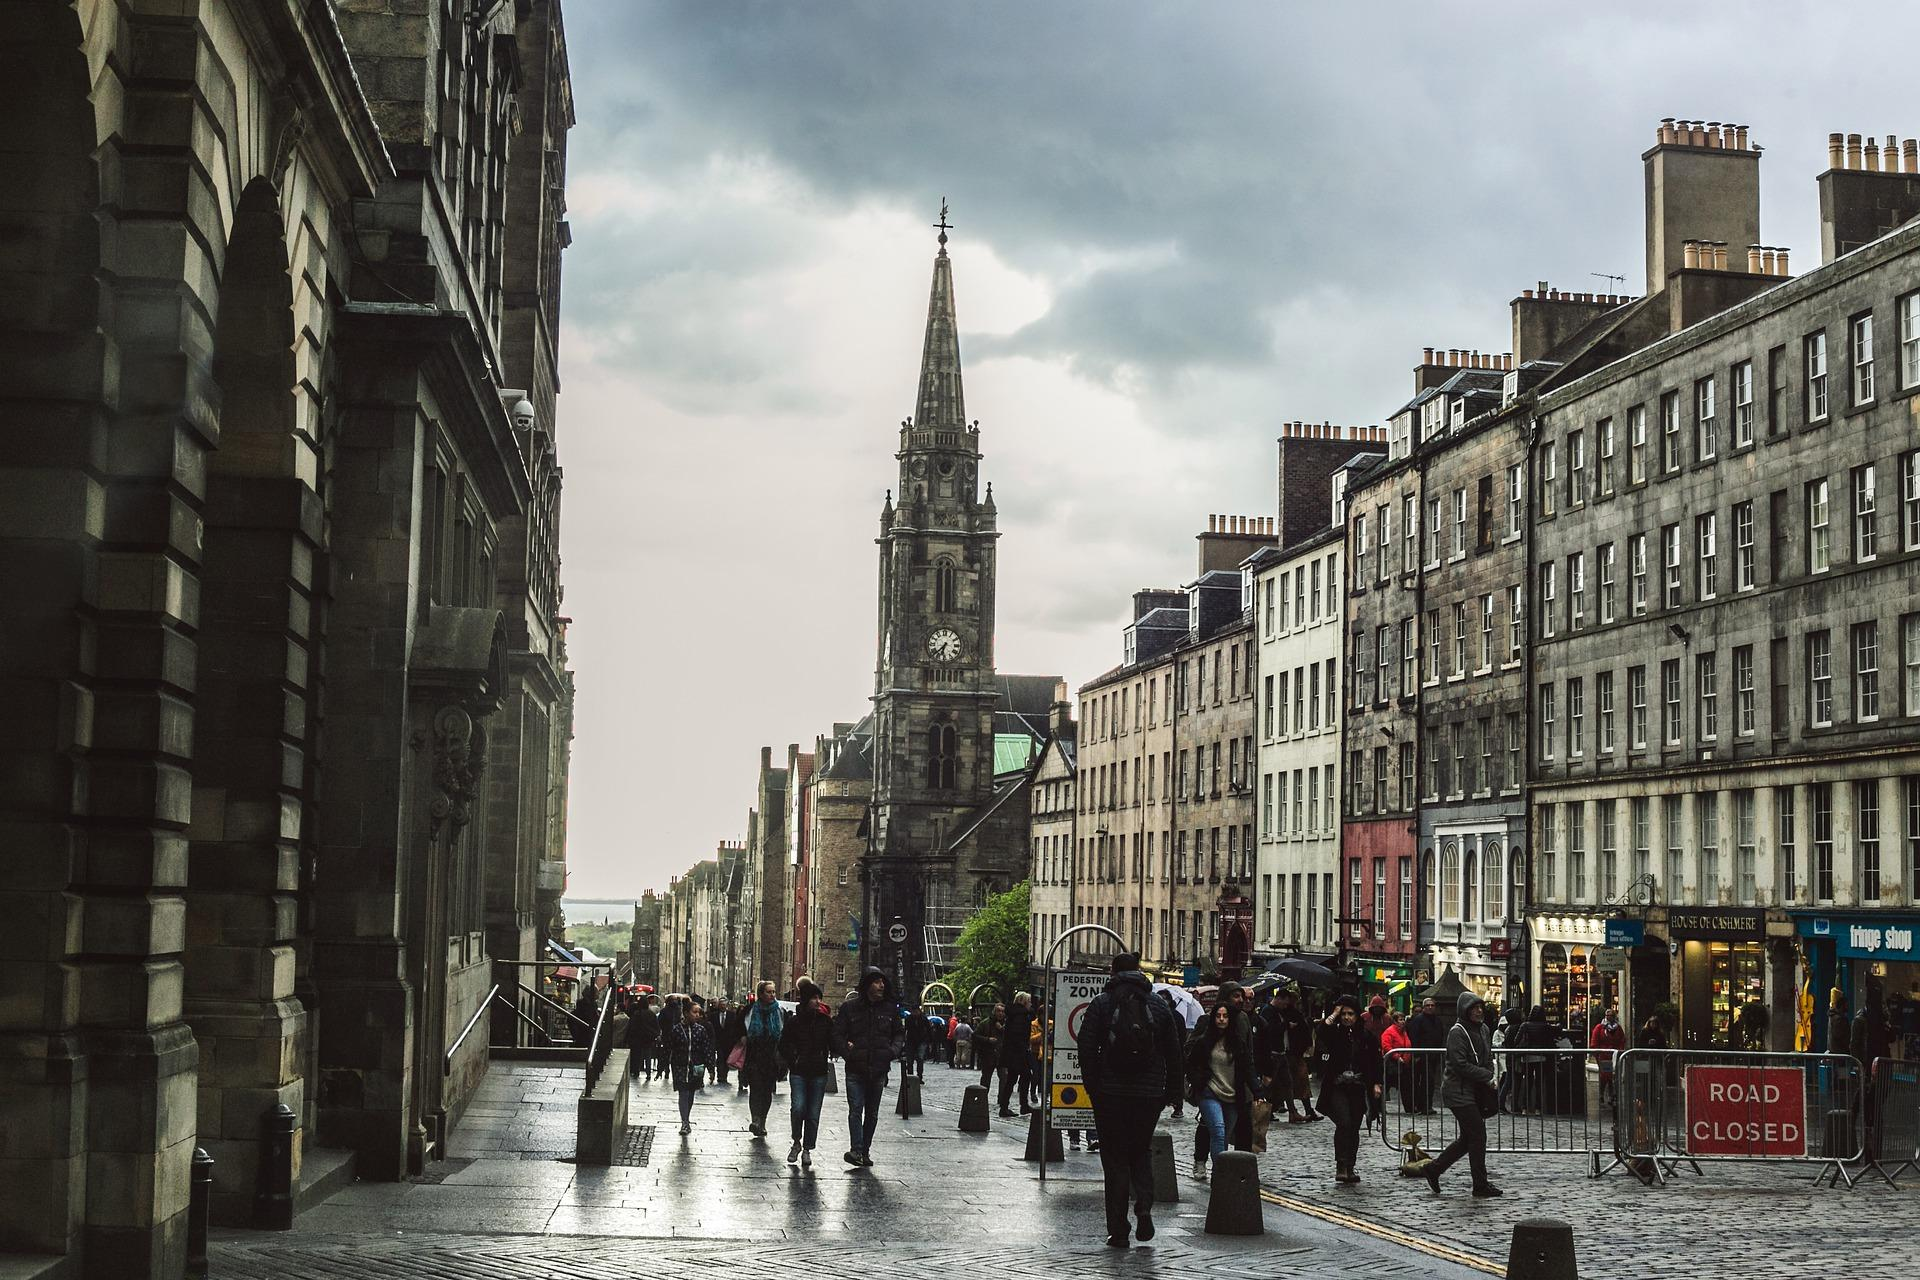 'Our cashflow is empty': Old Town restaurant writes emotional letter to Nicola Sturgeon